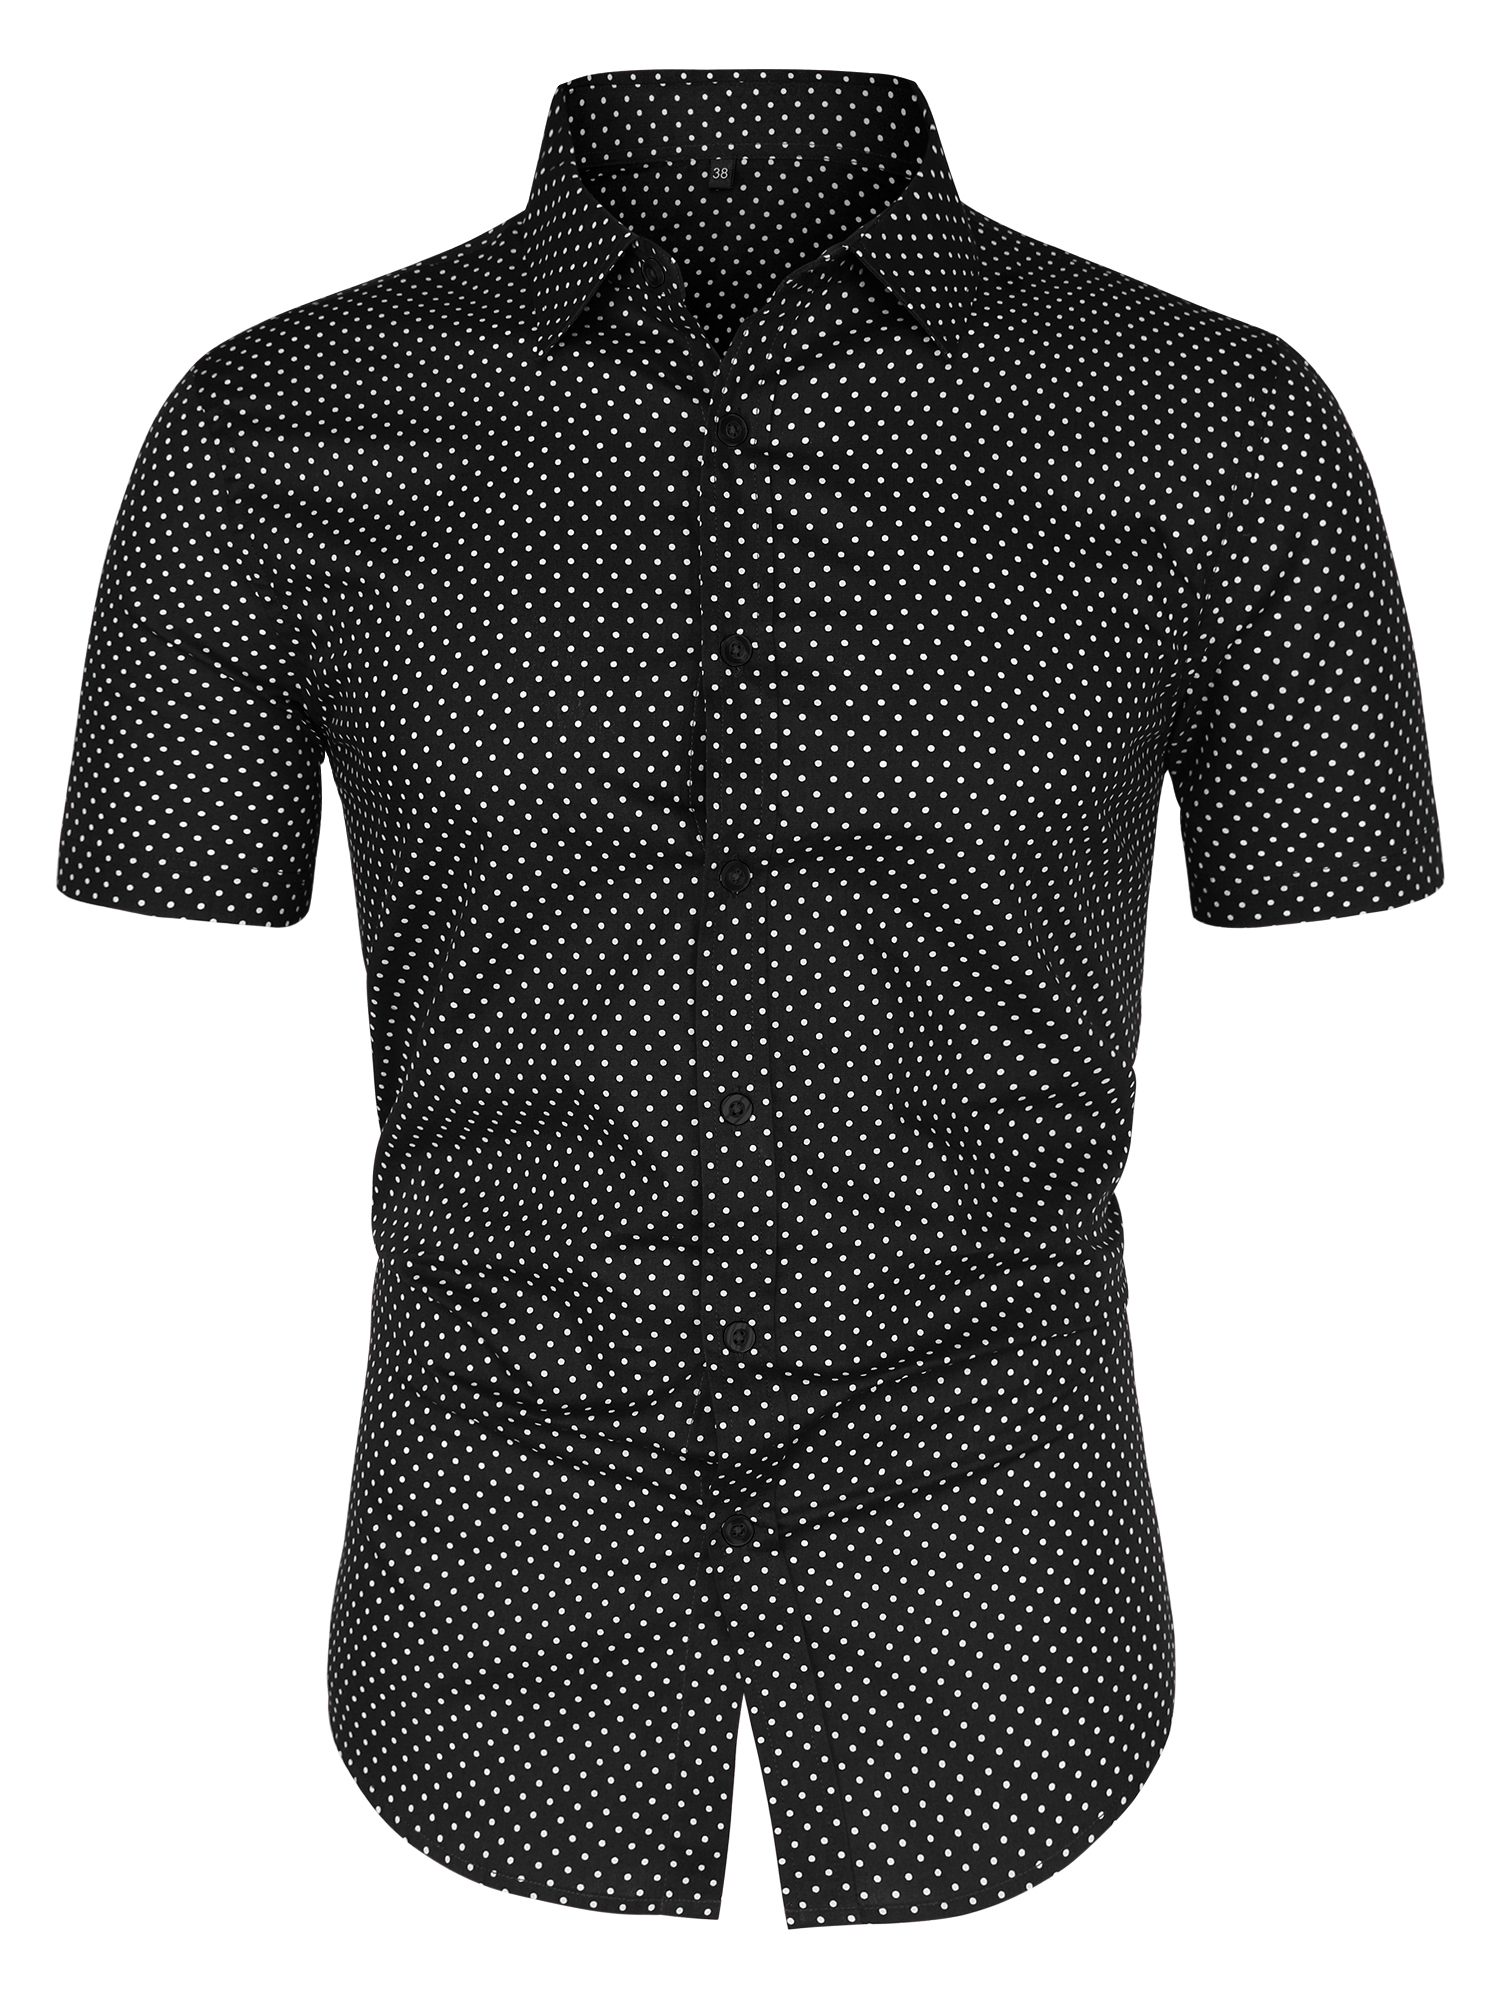 Men Short Sleeves Button Up Cotton Polka Dots Shirt Black M